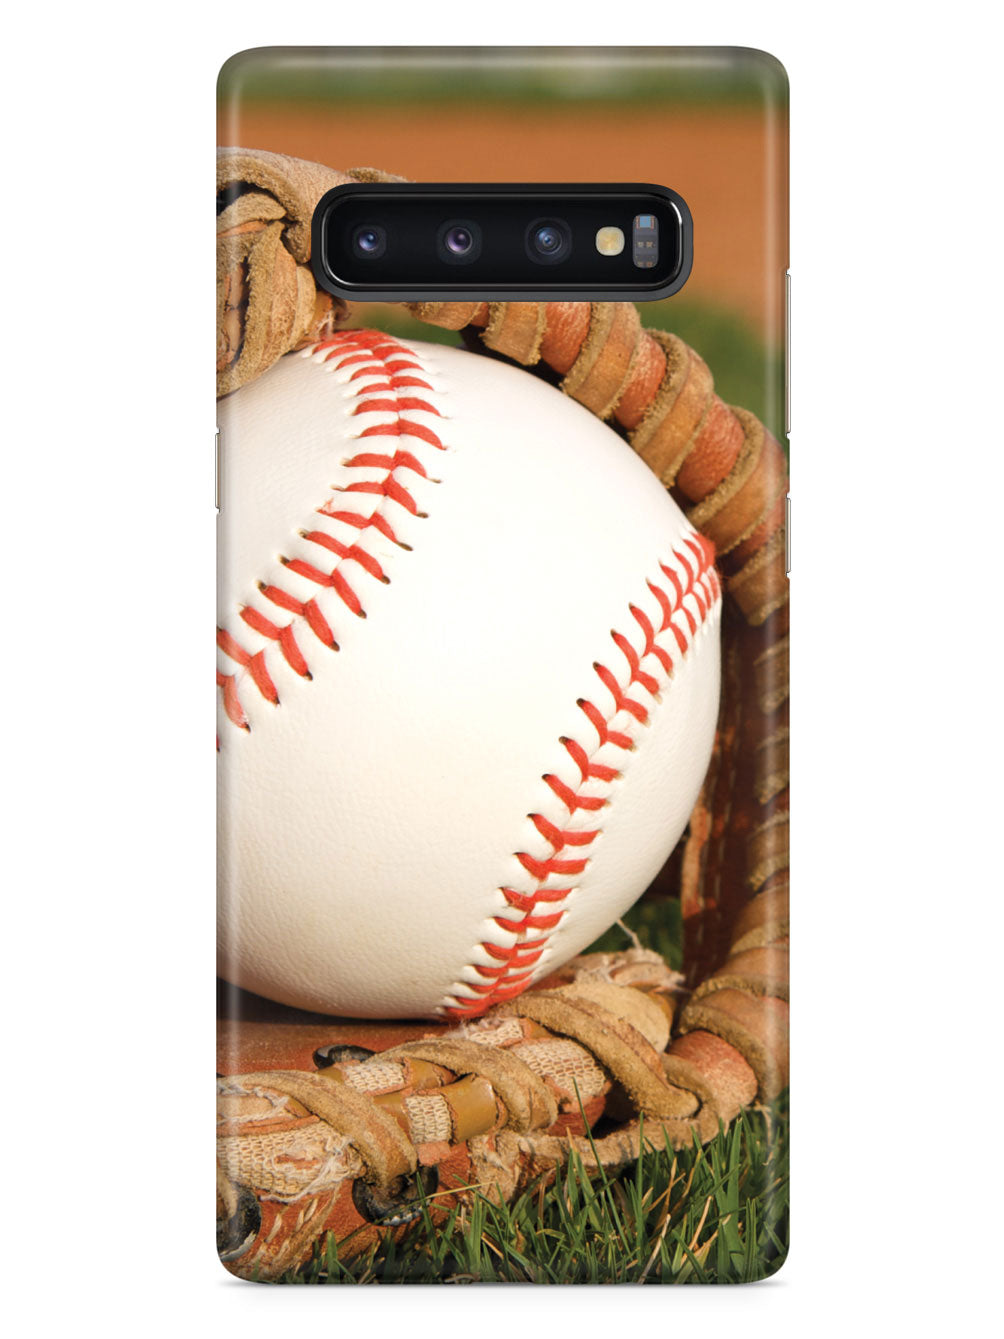 Baseball in Glove on the Field Case